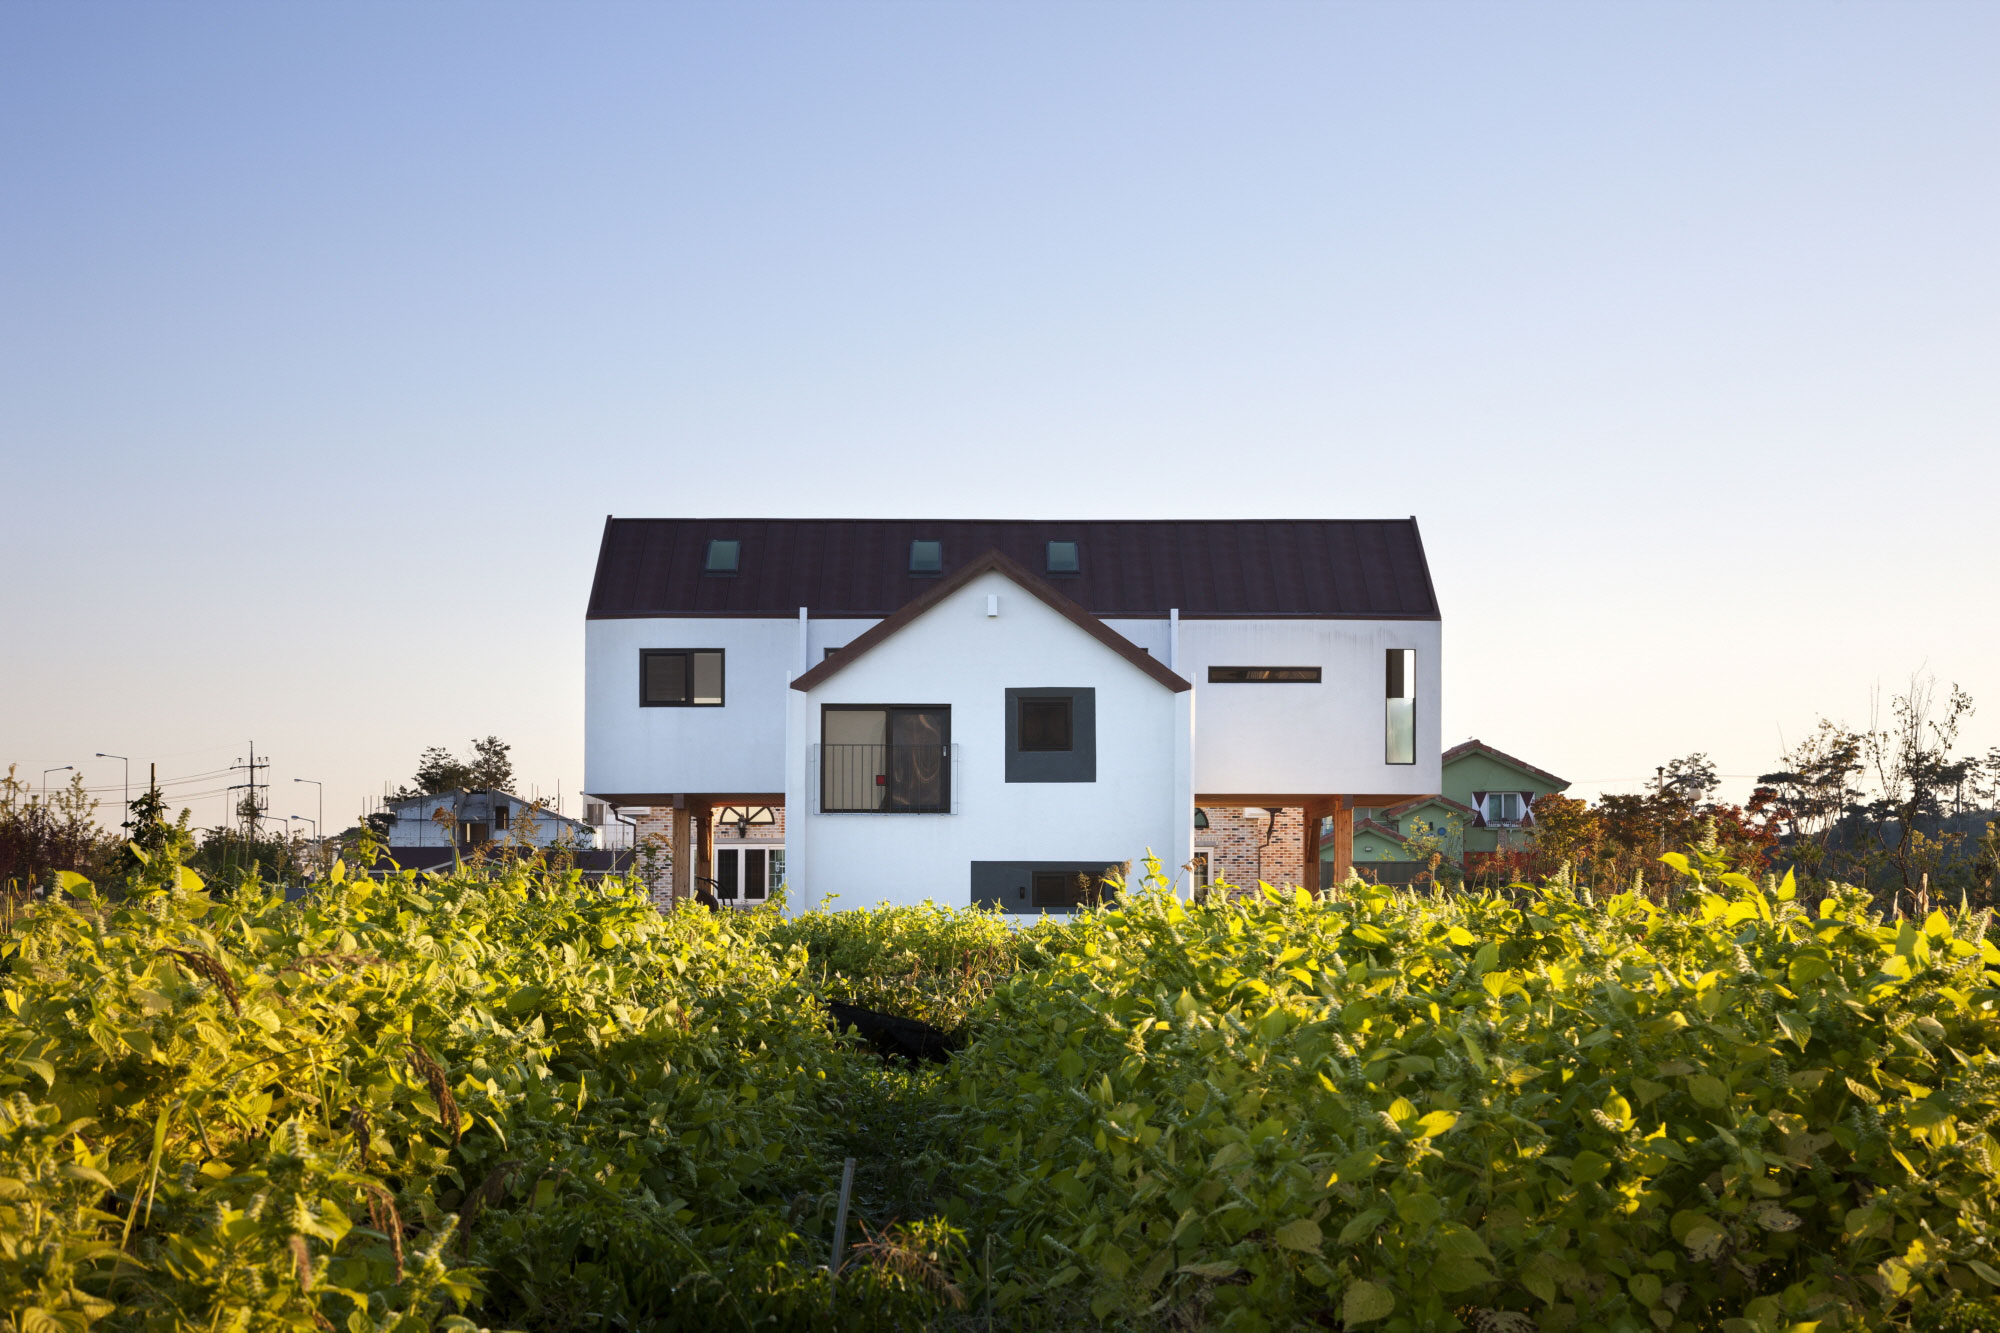 Iksan T Shaped House in South Korea by KDDH architects-02